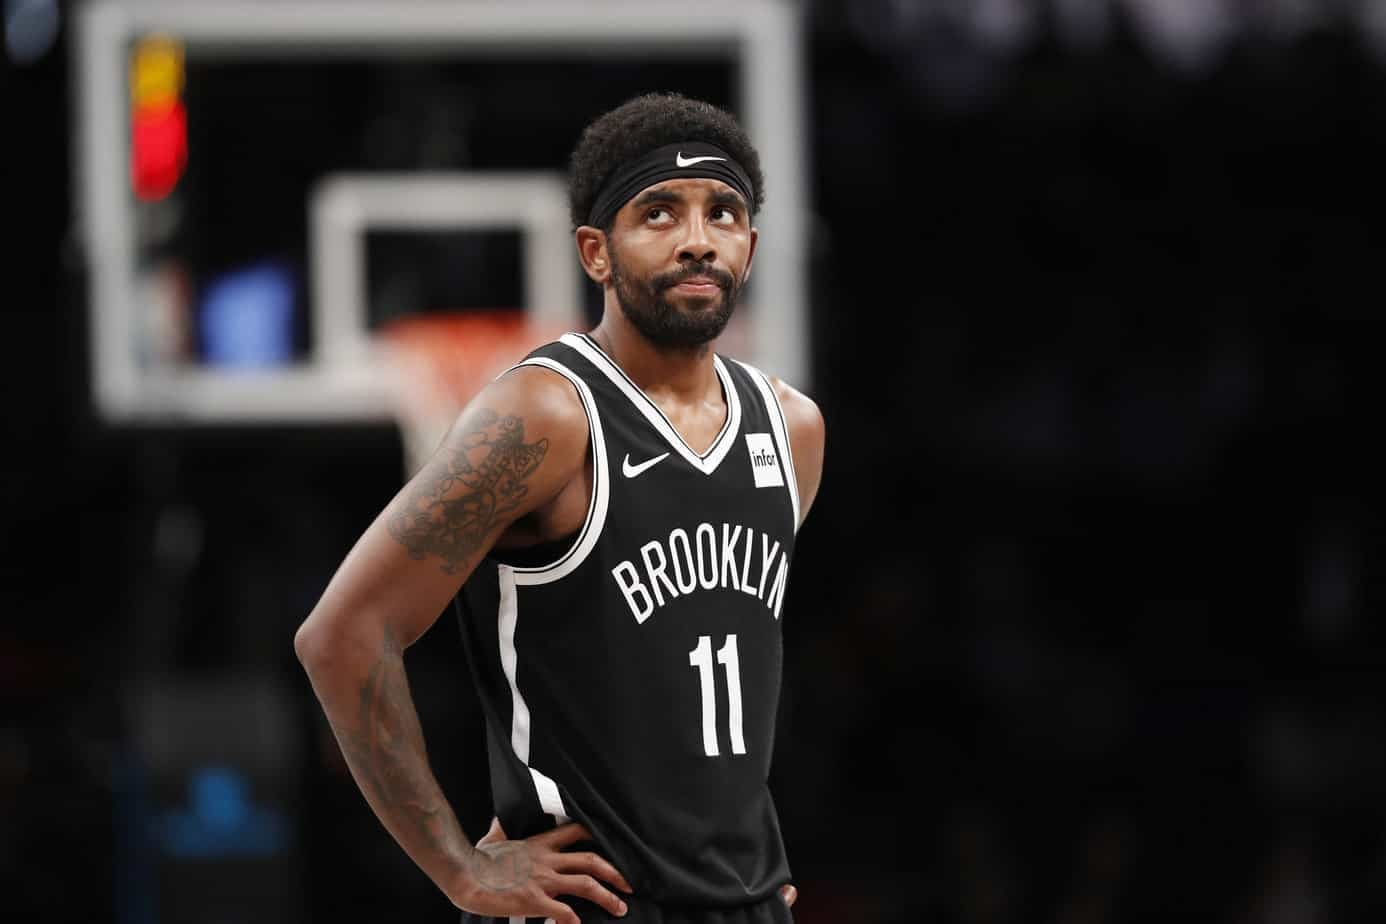 See the best NBA betting picks for 76ers vs Nets, including NBA odds, lines, props, betting trends & expert predictions for the game.